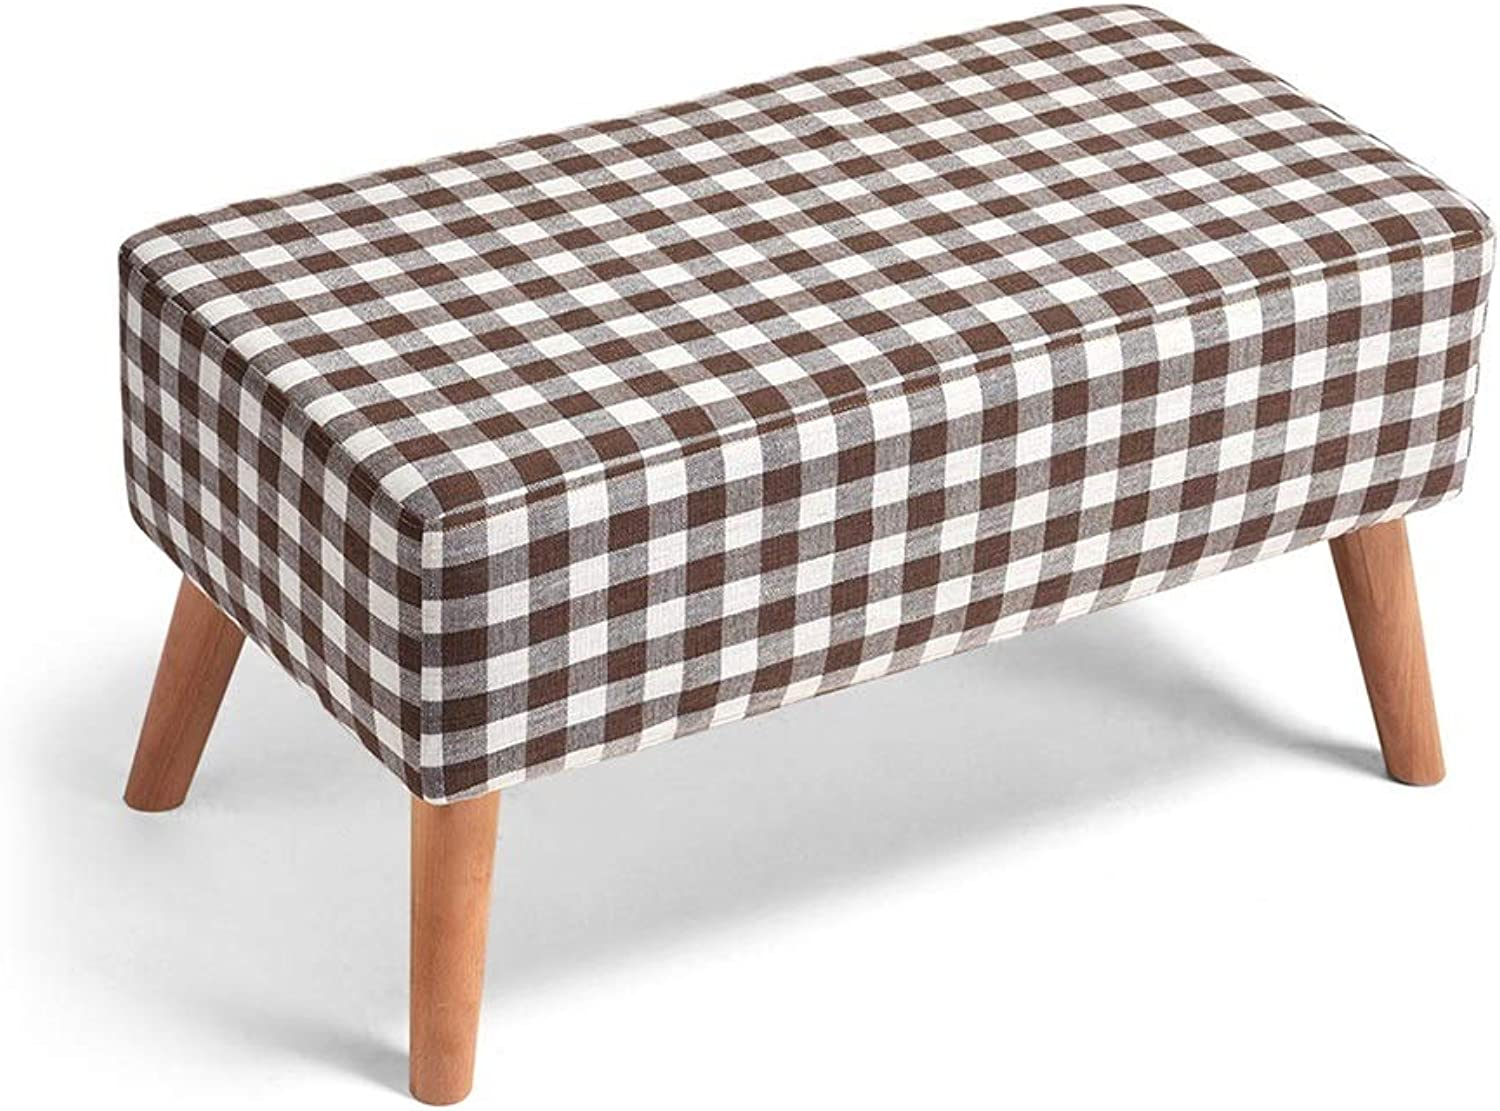 ZH STOOLS Sofa Stool, Solid Wood Small Bench Handmade Cotton Linen Multifunction Ergonomics Change shoes Stool for Living Room Entrance (color   Lattice, Size   No Storage)